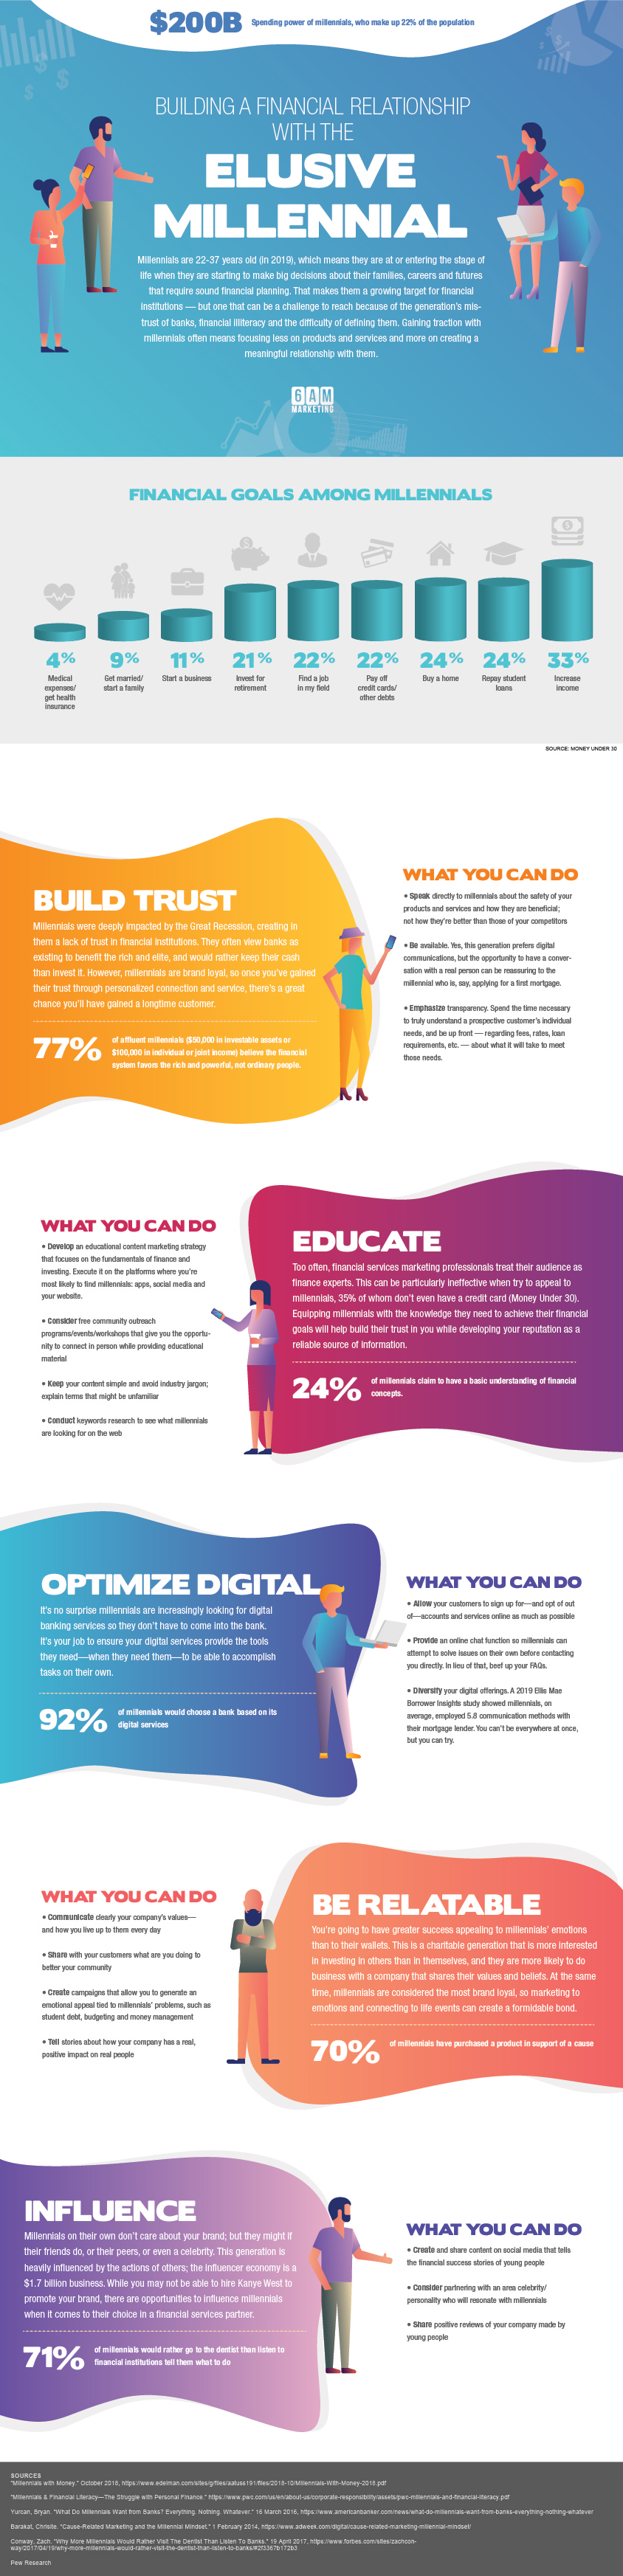 Financial services marketing to millennials infographic